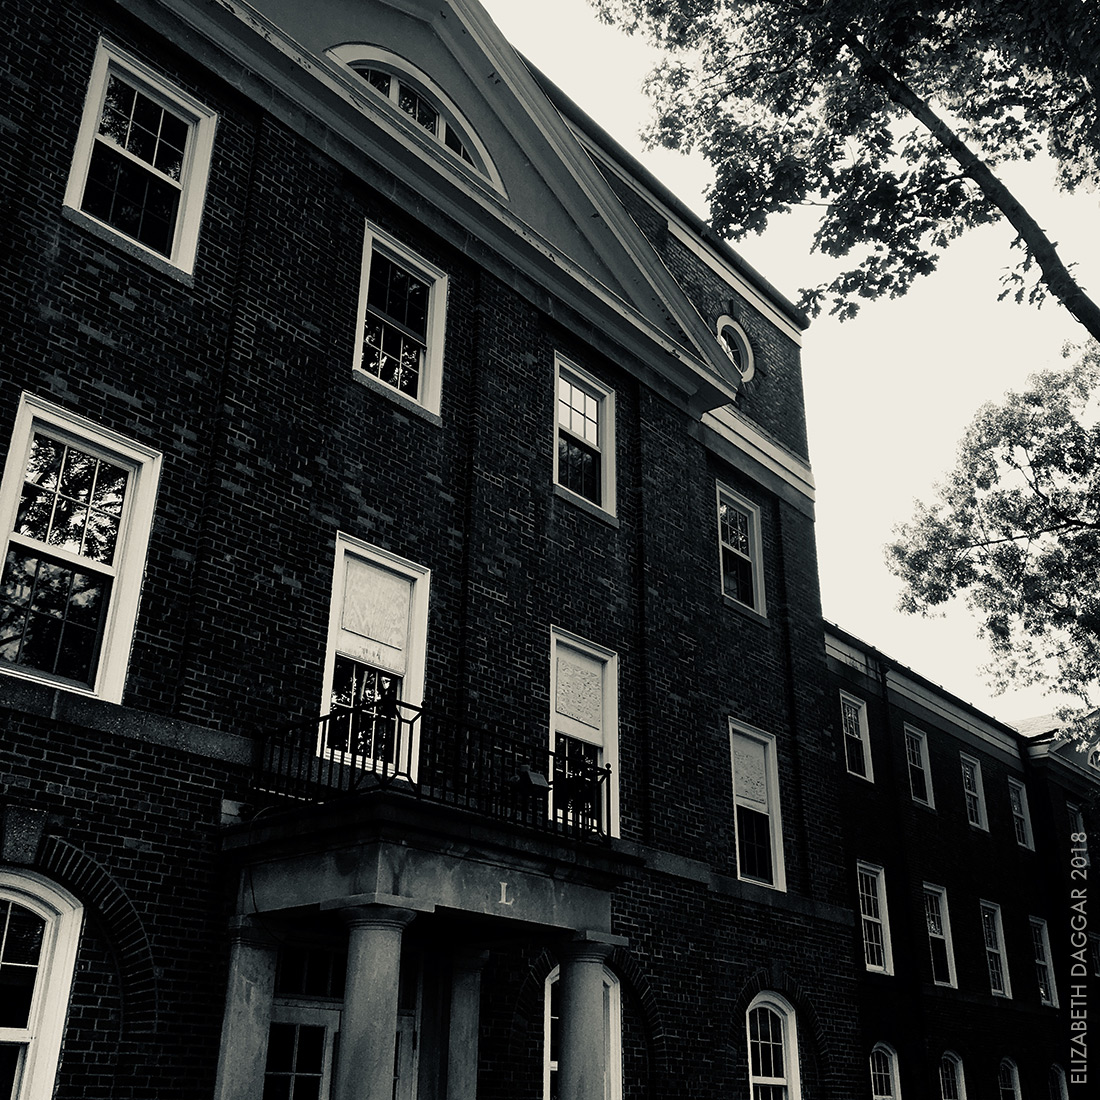 Houses on Governors Island